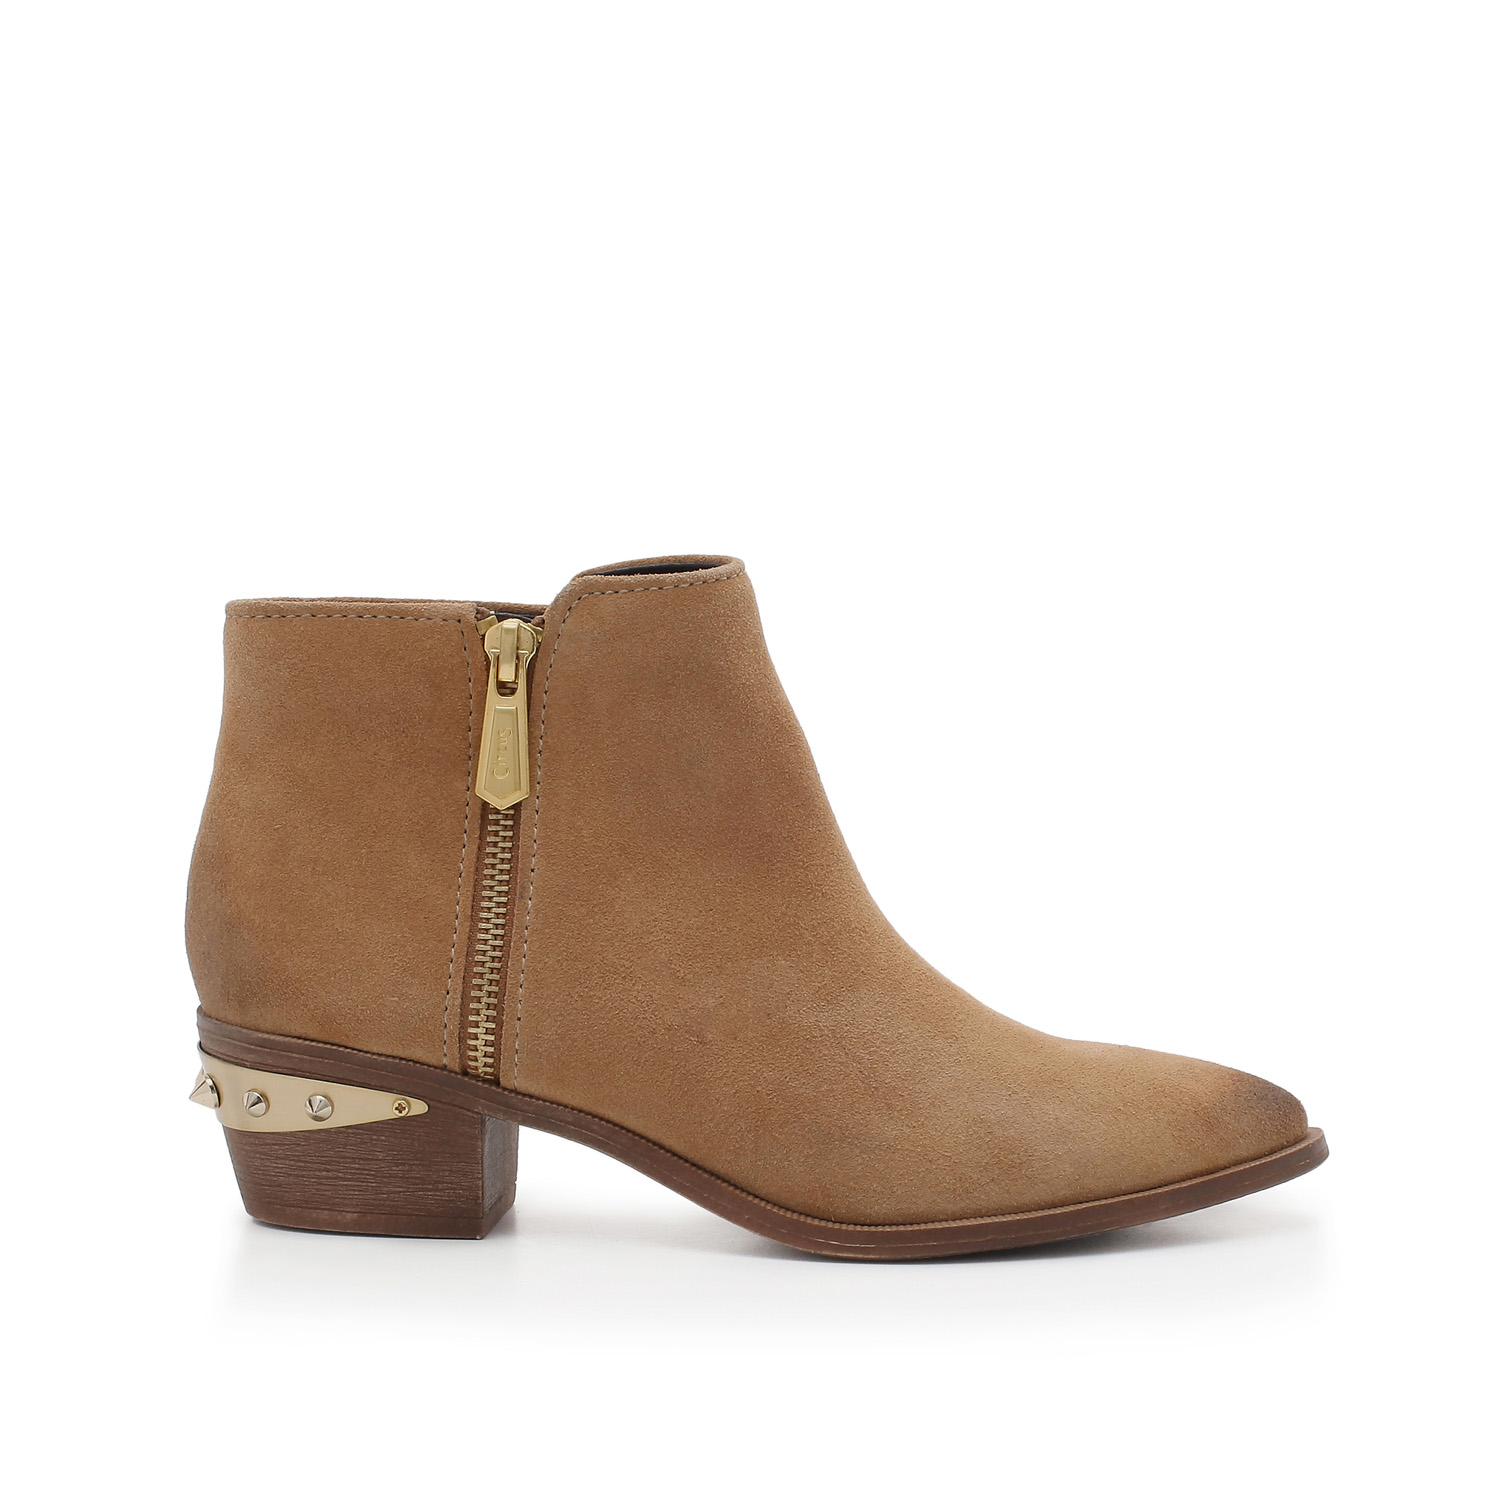 Sam Edelman brown bootie product photography